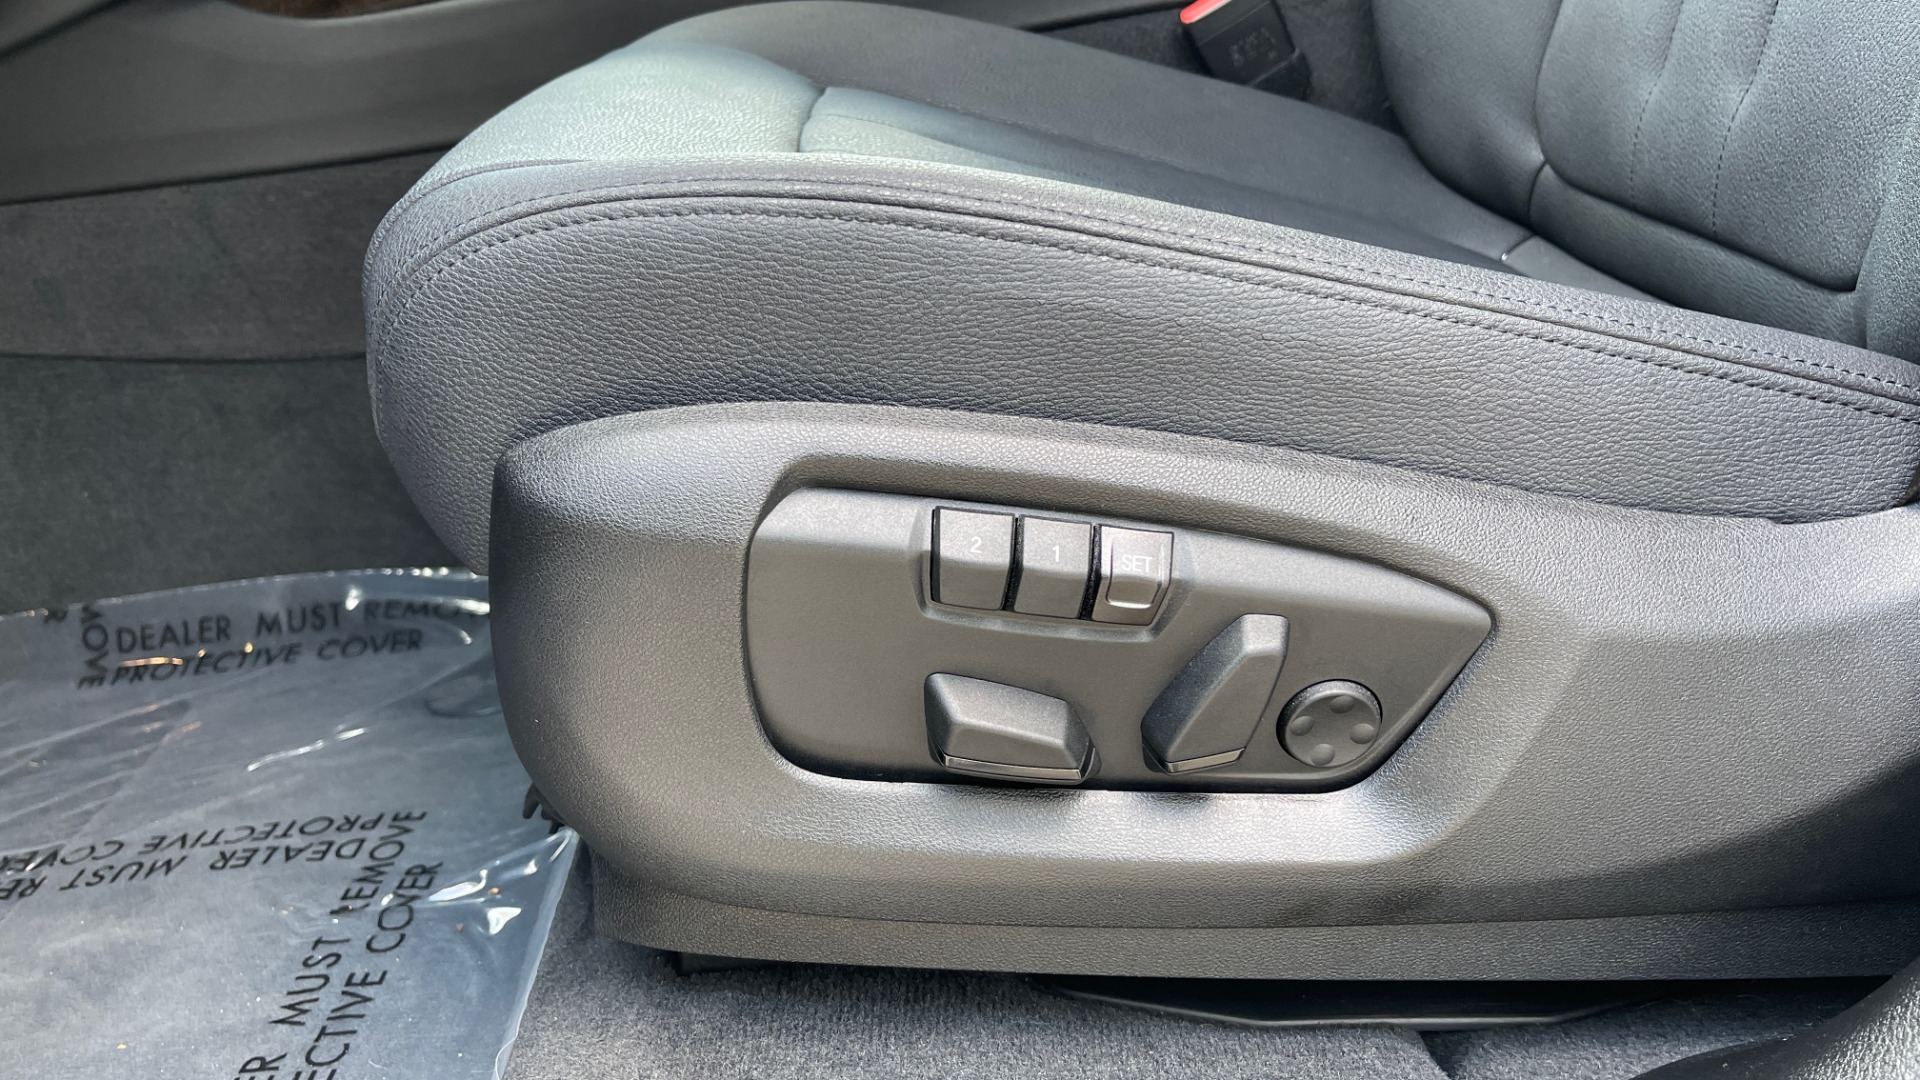 Used 2018 BMW X5 XDRIVE35I PREMIUM / DRVR ASST / WIRELESS CHARGING / CAMERAS for sale $46,995 at Formula Imports in Charlotte NC 28227 36